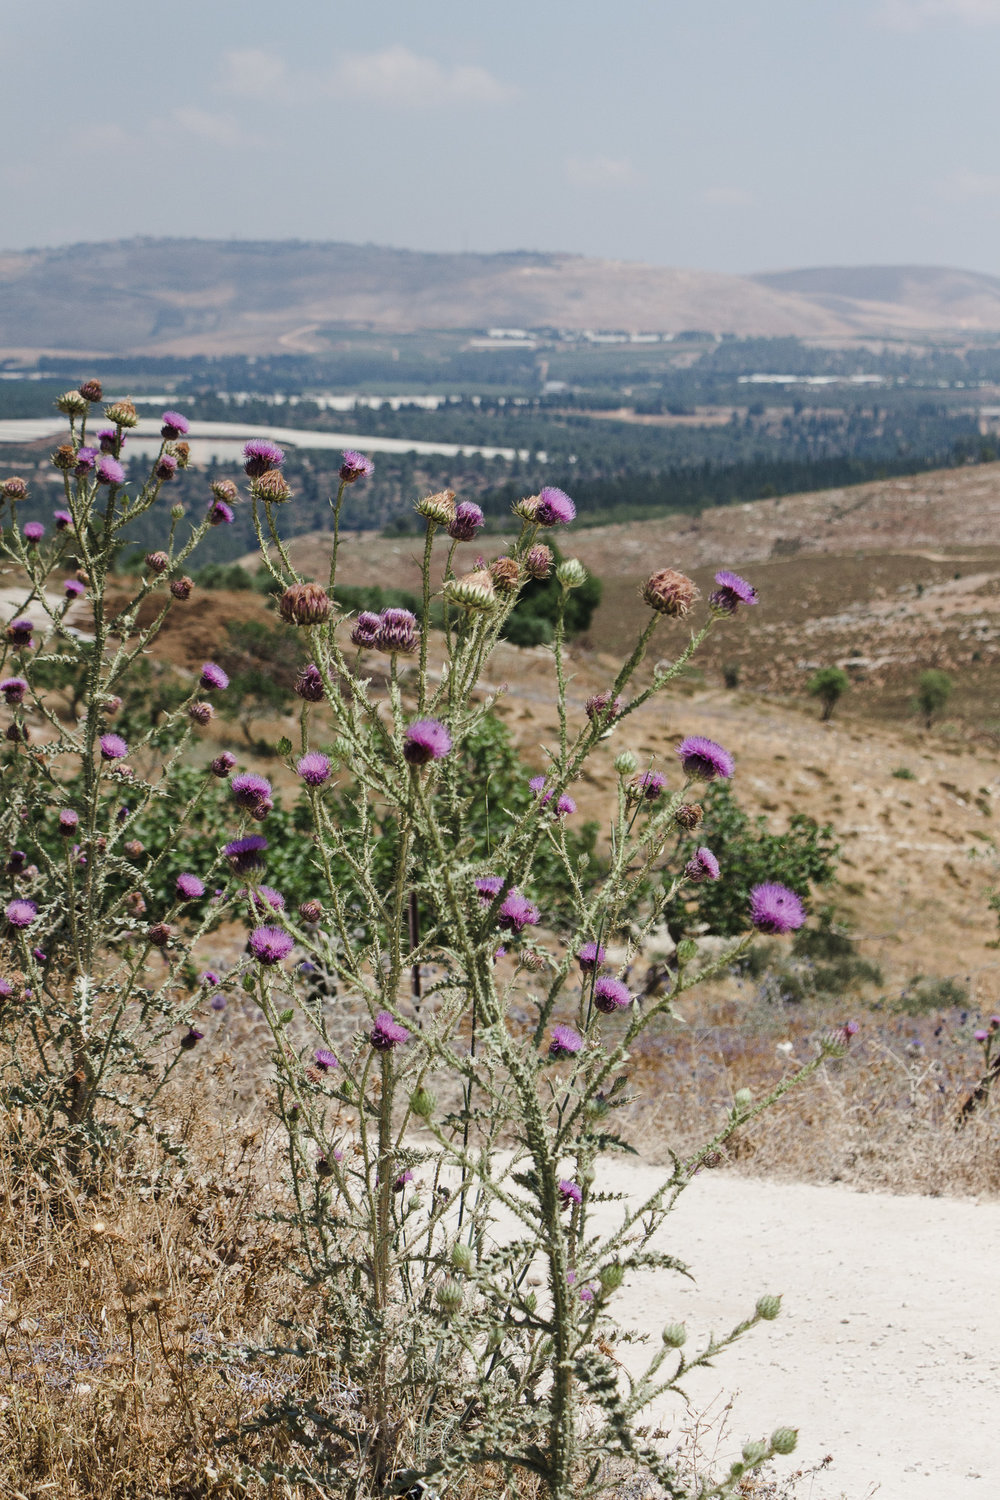 In the Aramaic-Maronite Village, Jish - The Aramean Christians in Israel work to end persecution and preserve their culture — especially their language, which is known to have been spoken by Jesus of Nazareth. Read + See More